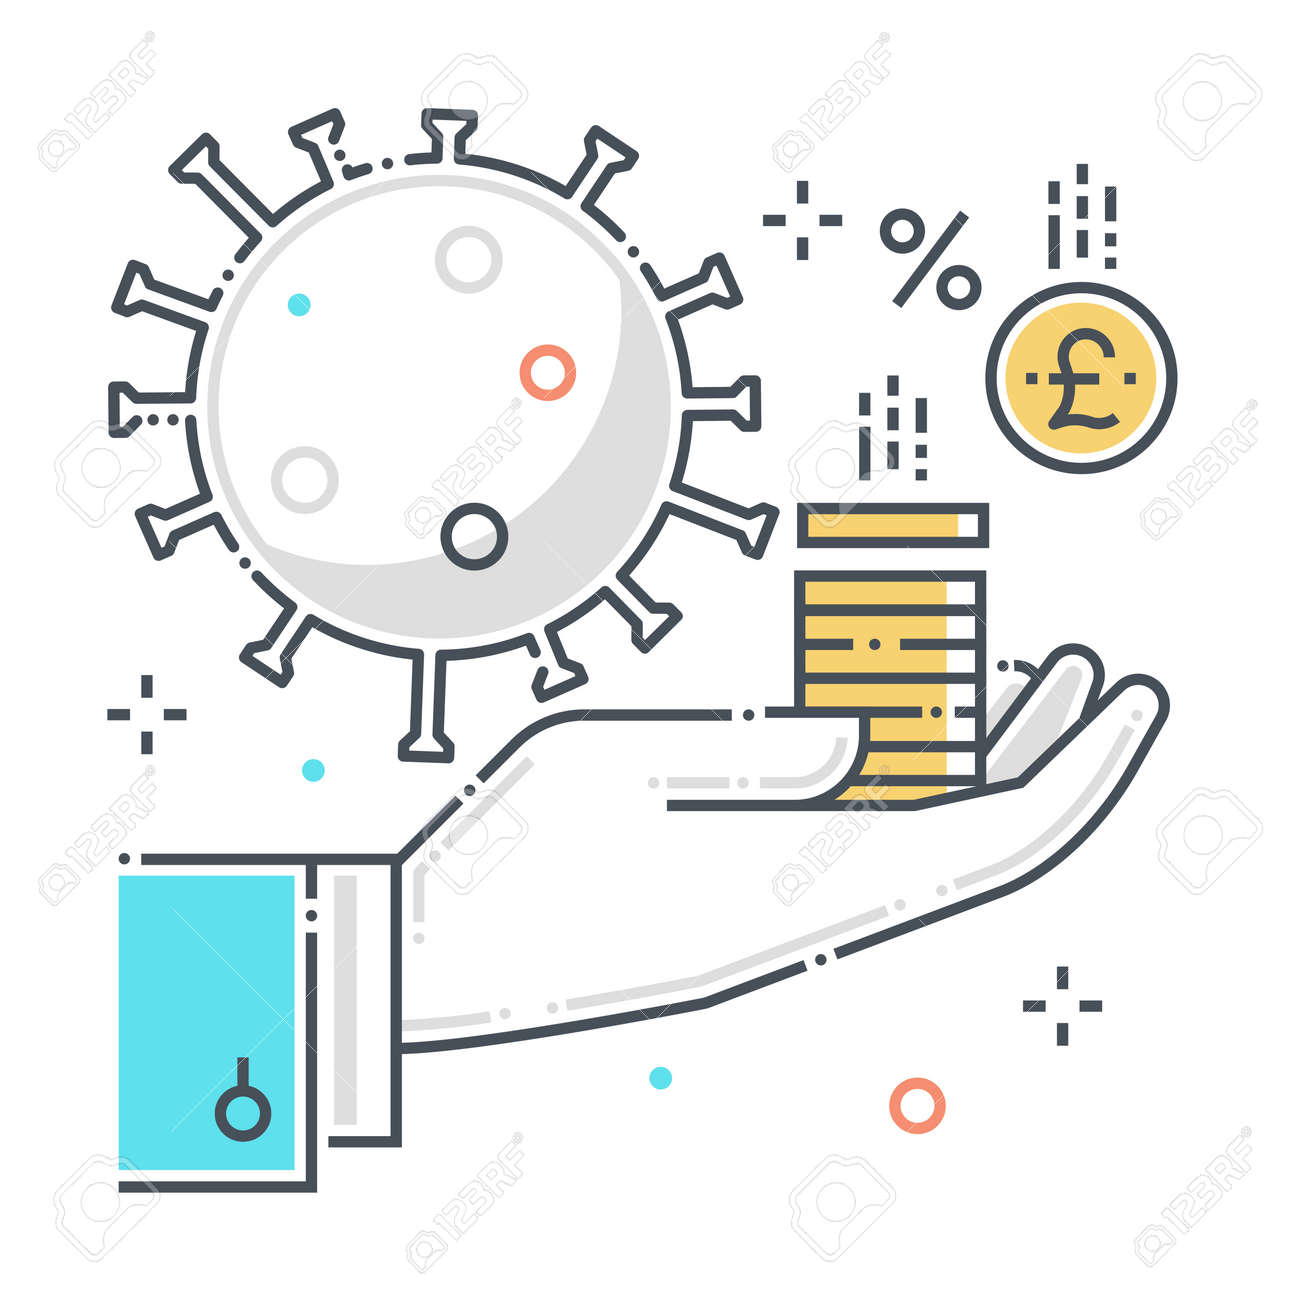 Funding related color line vector icon, illustration. The icon is about help, economy, corona virus, contamination, epidemic, money. The composition is infinitely scalable. - 163698005